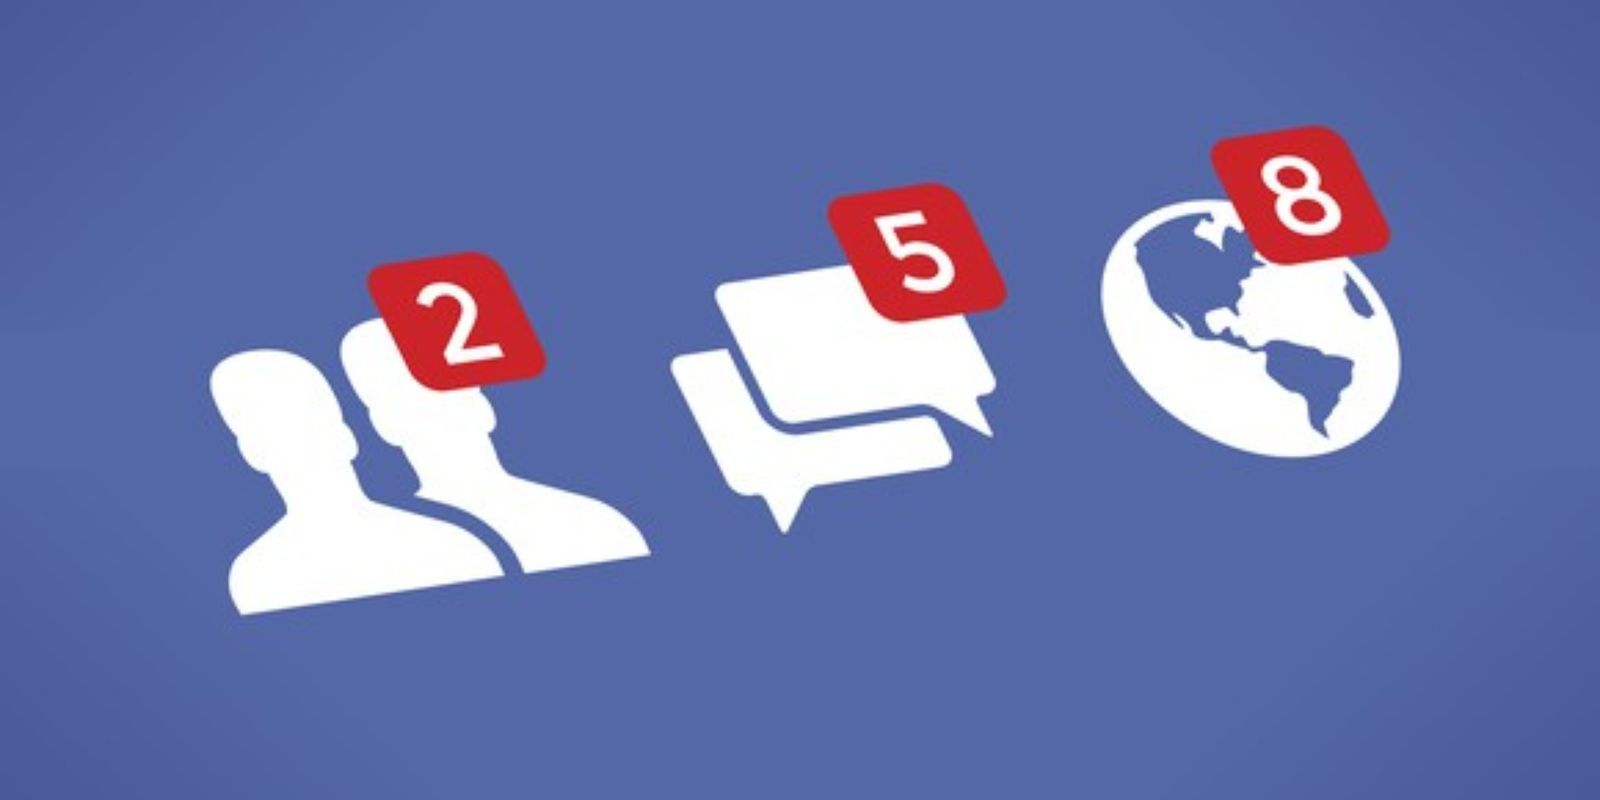 Recommended Reading: John Lanchester on Facebook 5